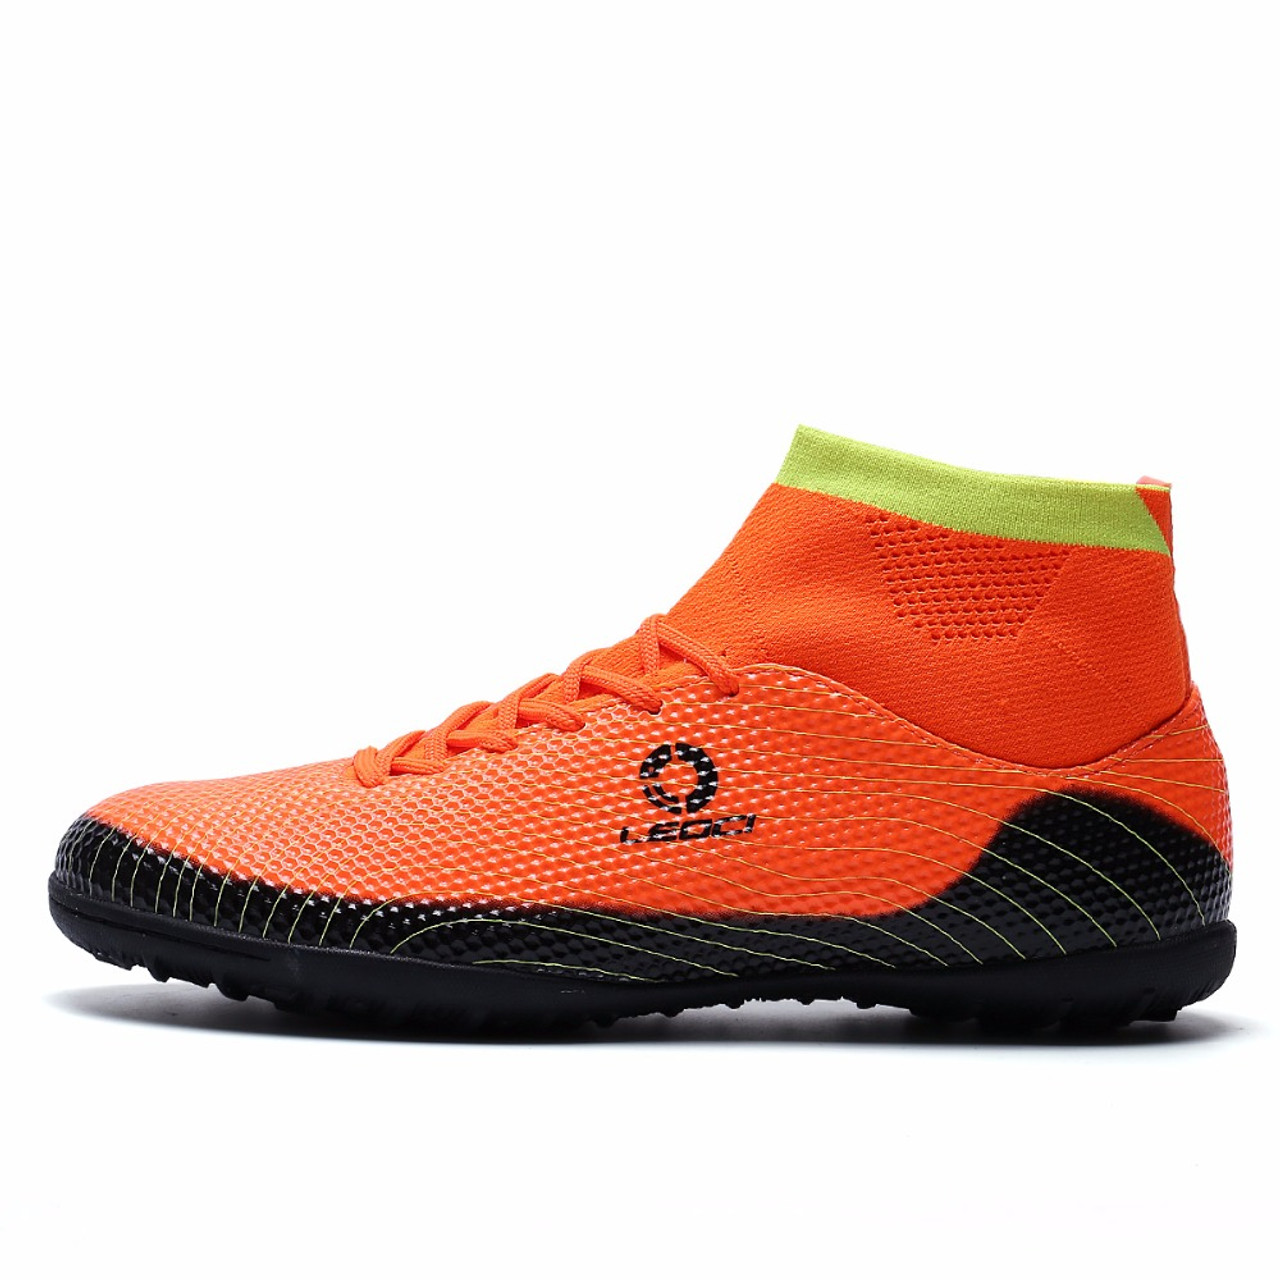 ad35d6a3f ... Leoci Men TF Soccer Shoes High Ankle Football Boots Plus Size Soccer  Cleat Boots Kids Boys ...